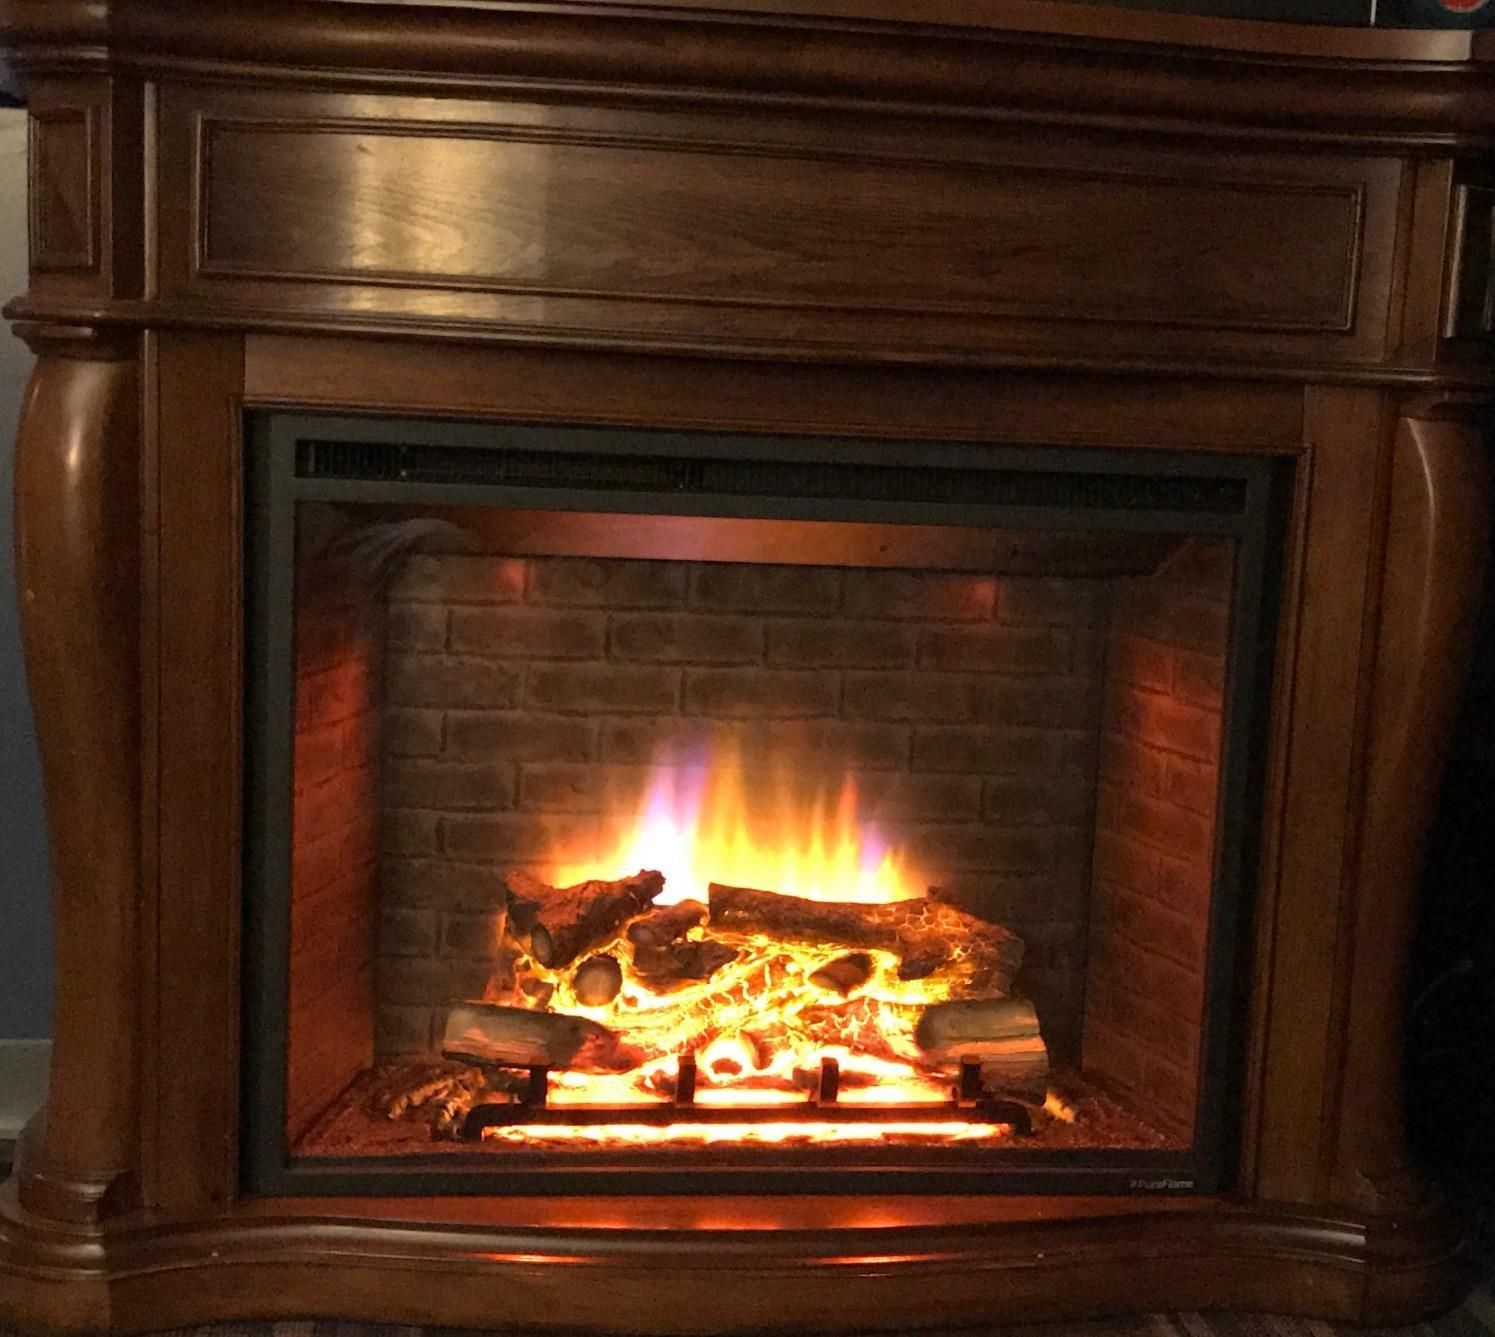 Best Electric Fireplace Reviews In 2020 Best Electric Fireplace